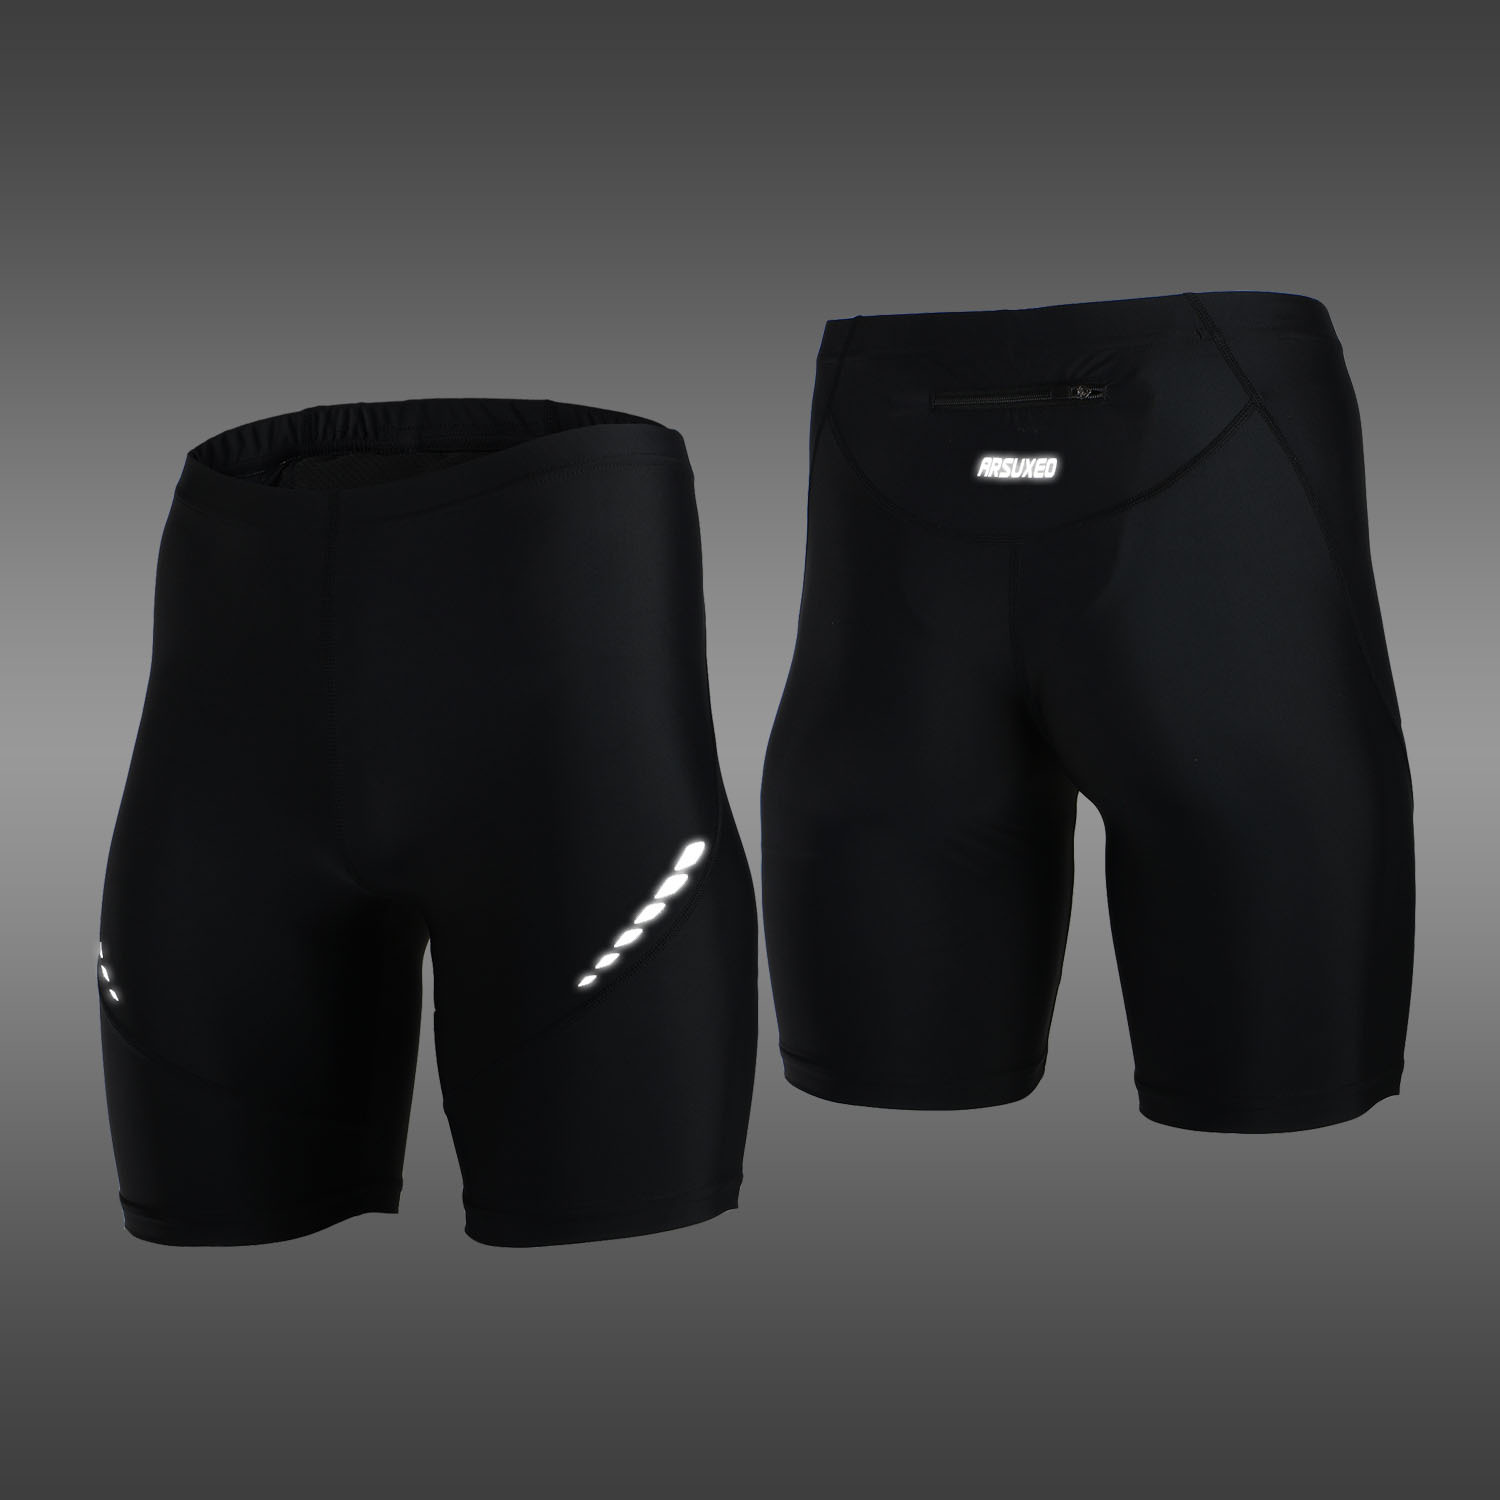 Pro Menns løpebukser Kort Reflekterende Hurtig Tørr Elastisk Sports Leggings Kompresjons Gym Fitness Shorts Summer Sweatpants